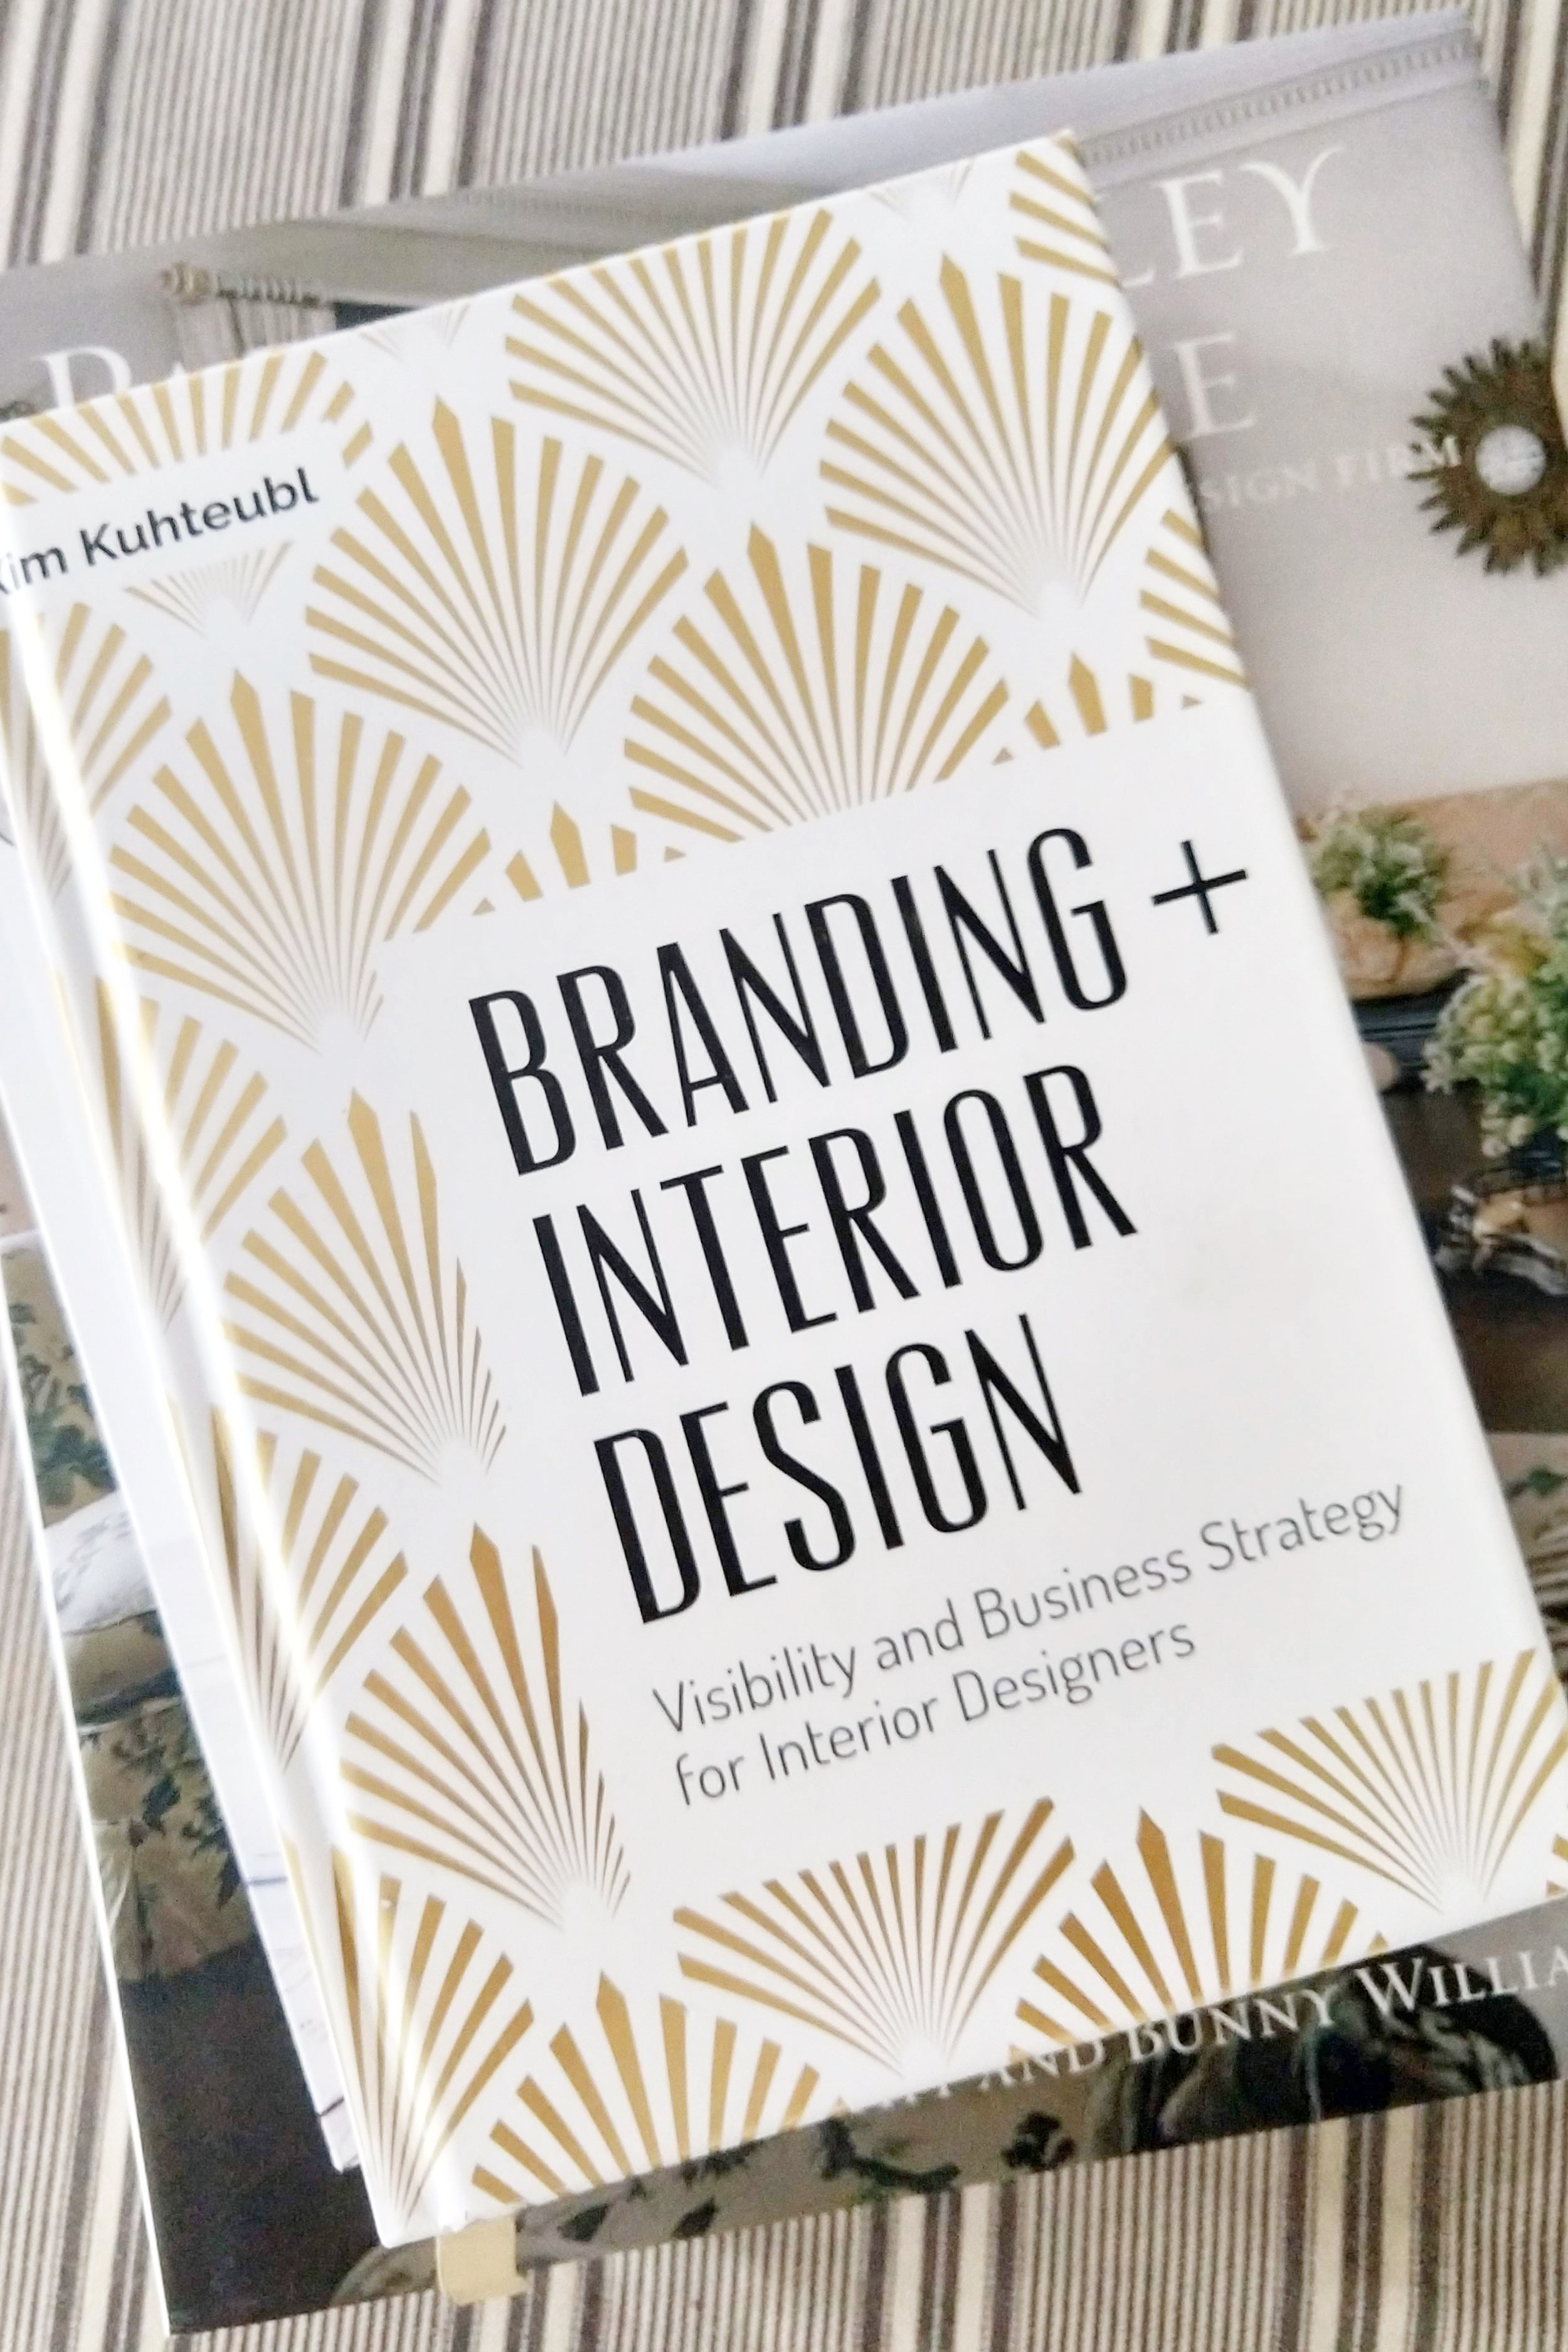 Branding + Interior Design by Kim Kuhteubl for JHD Design School by Jamie House Design